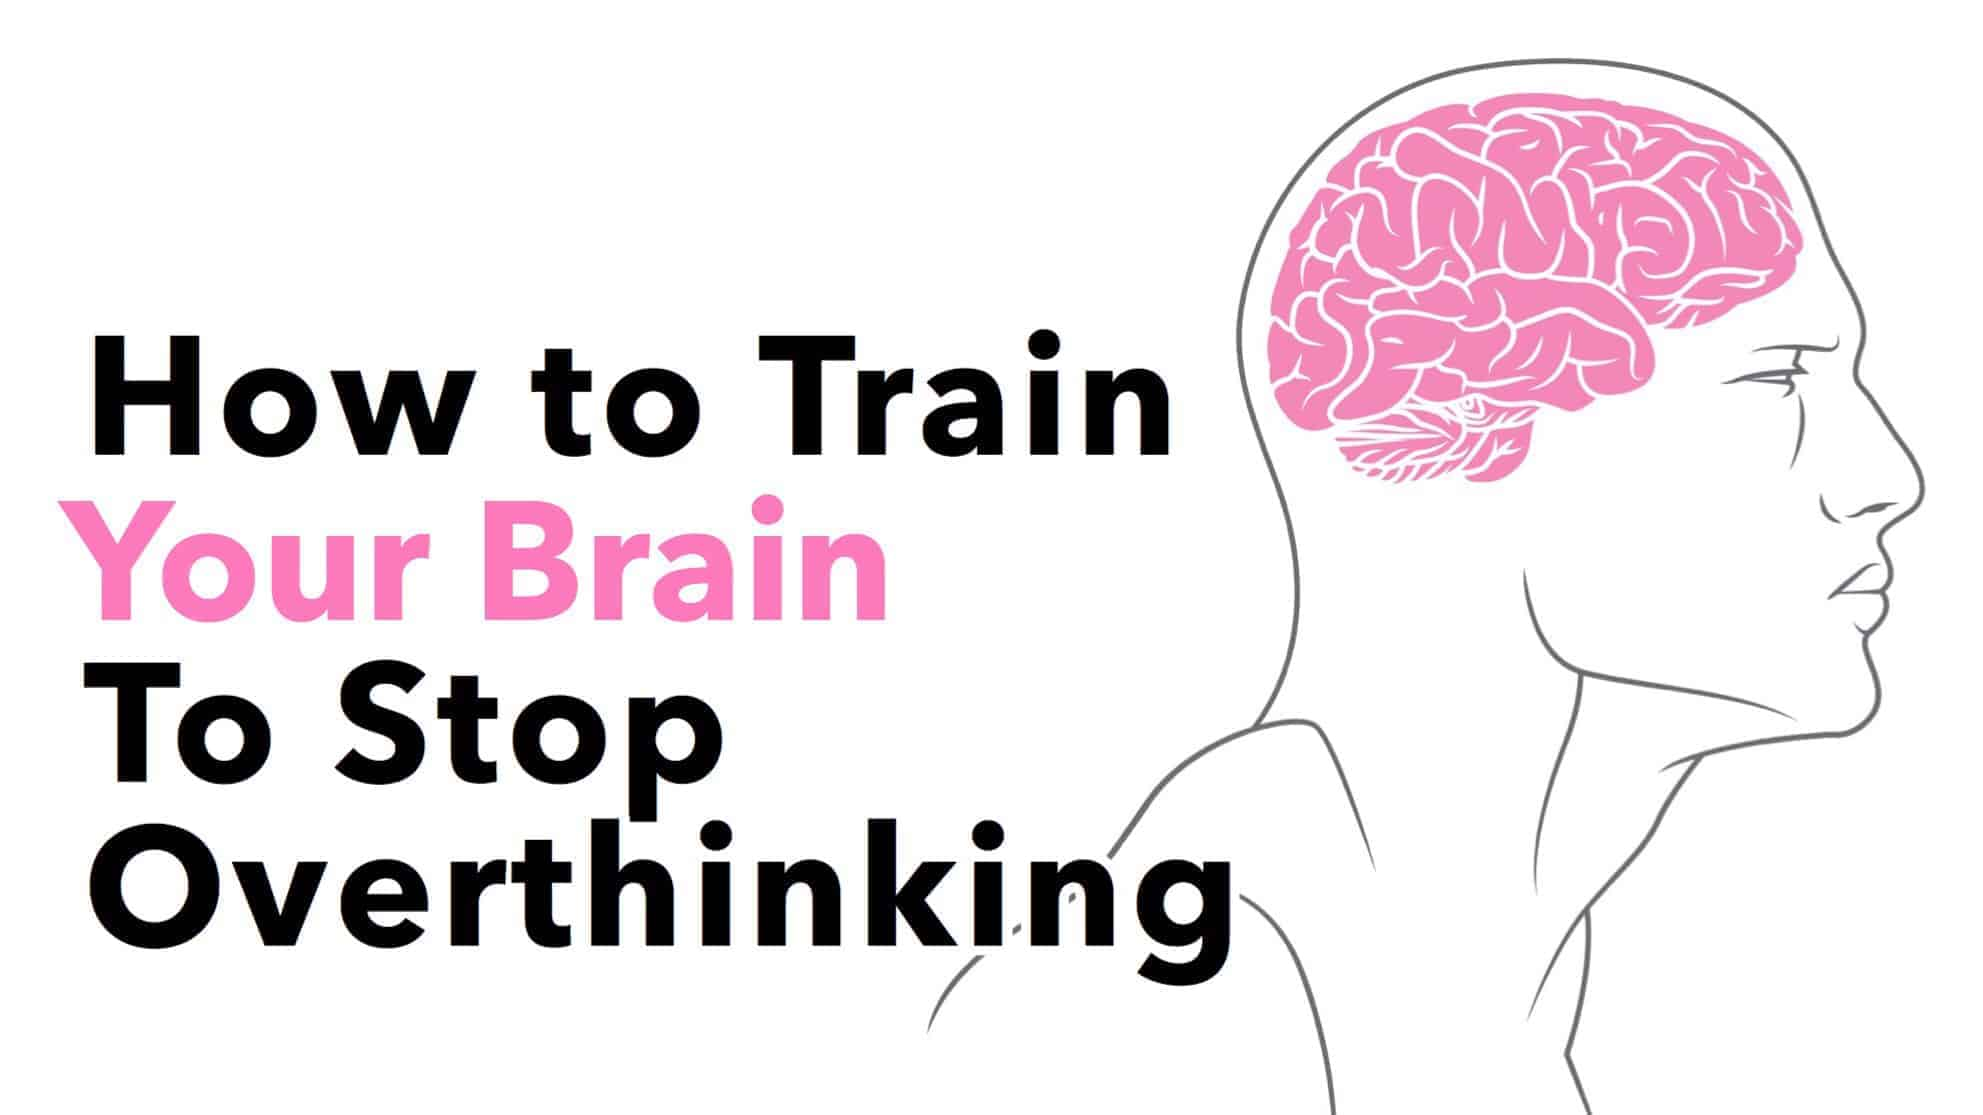 How To Train Your Brain To Stop Overthinking